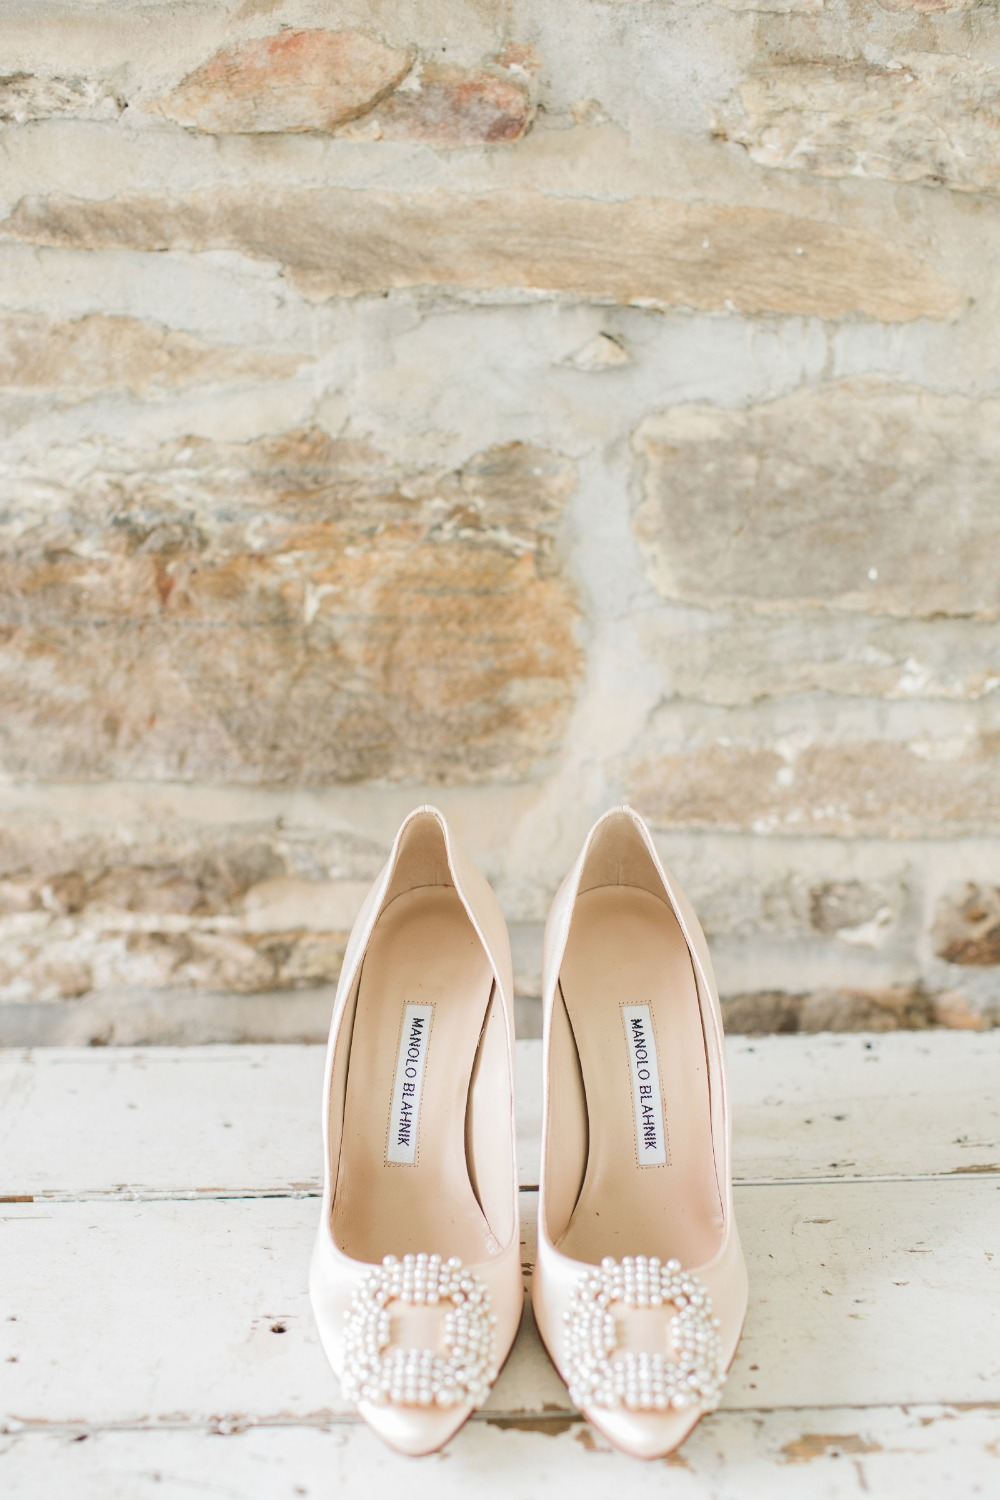 Wedding heels with pearl details